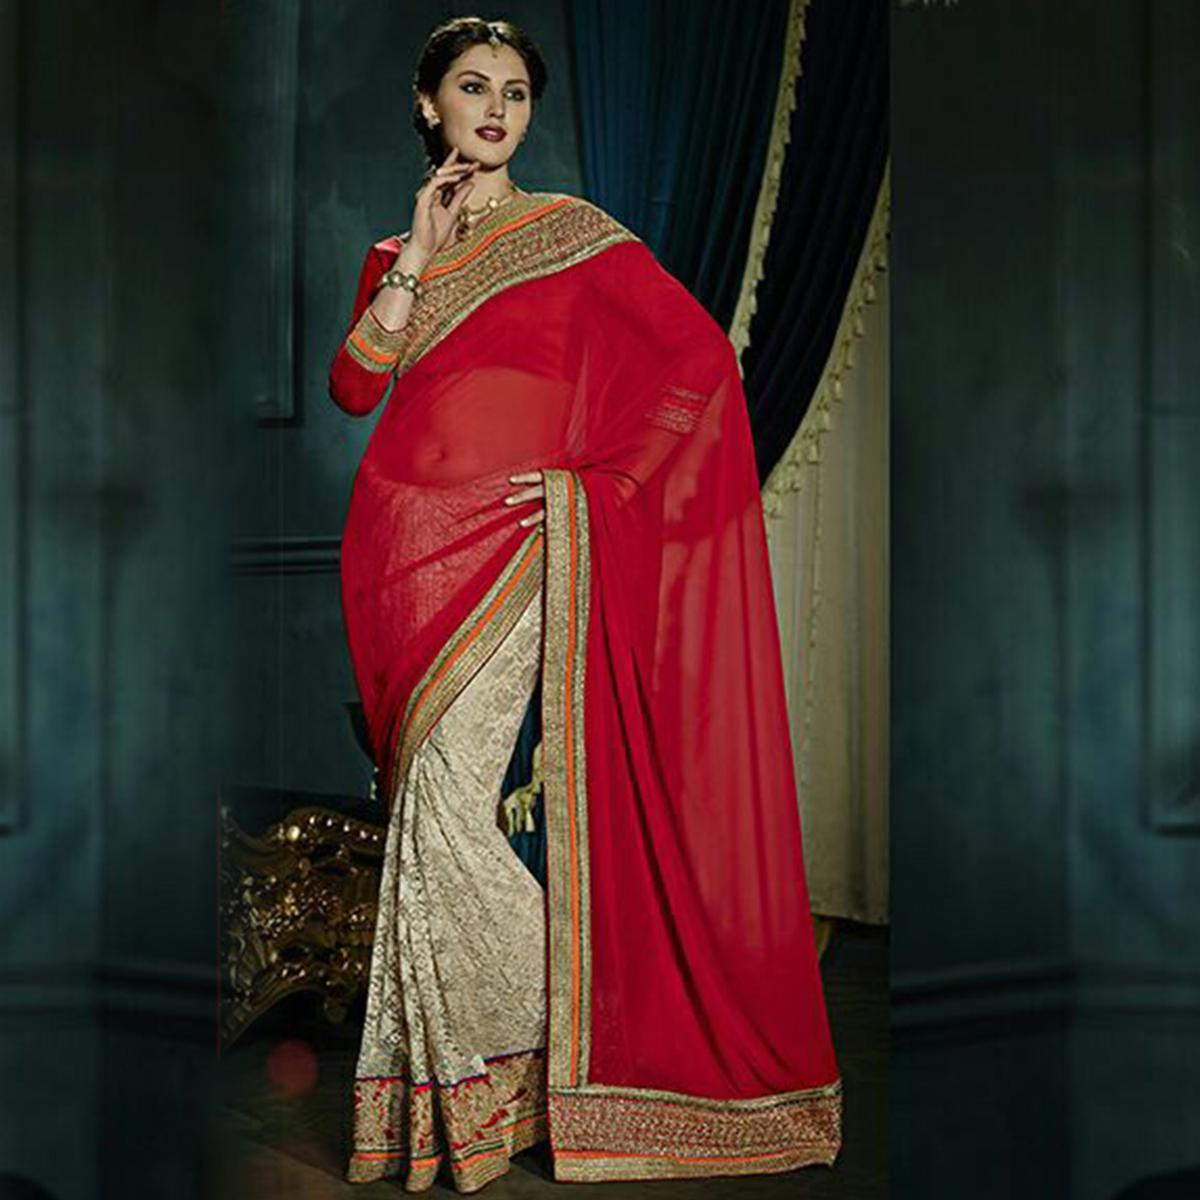 Flattering Red & Cream Colored Party Wear Embroidered Georgette - Net Saree